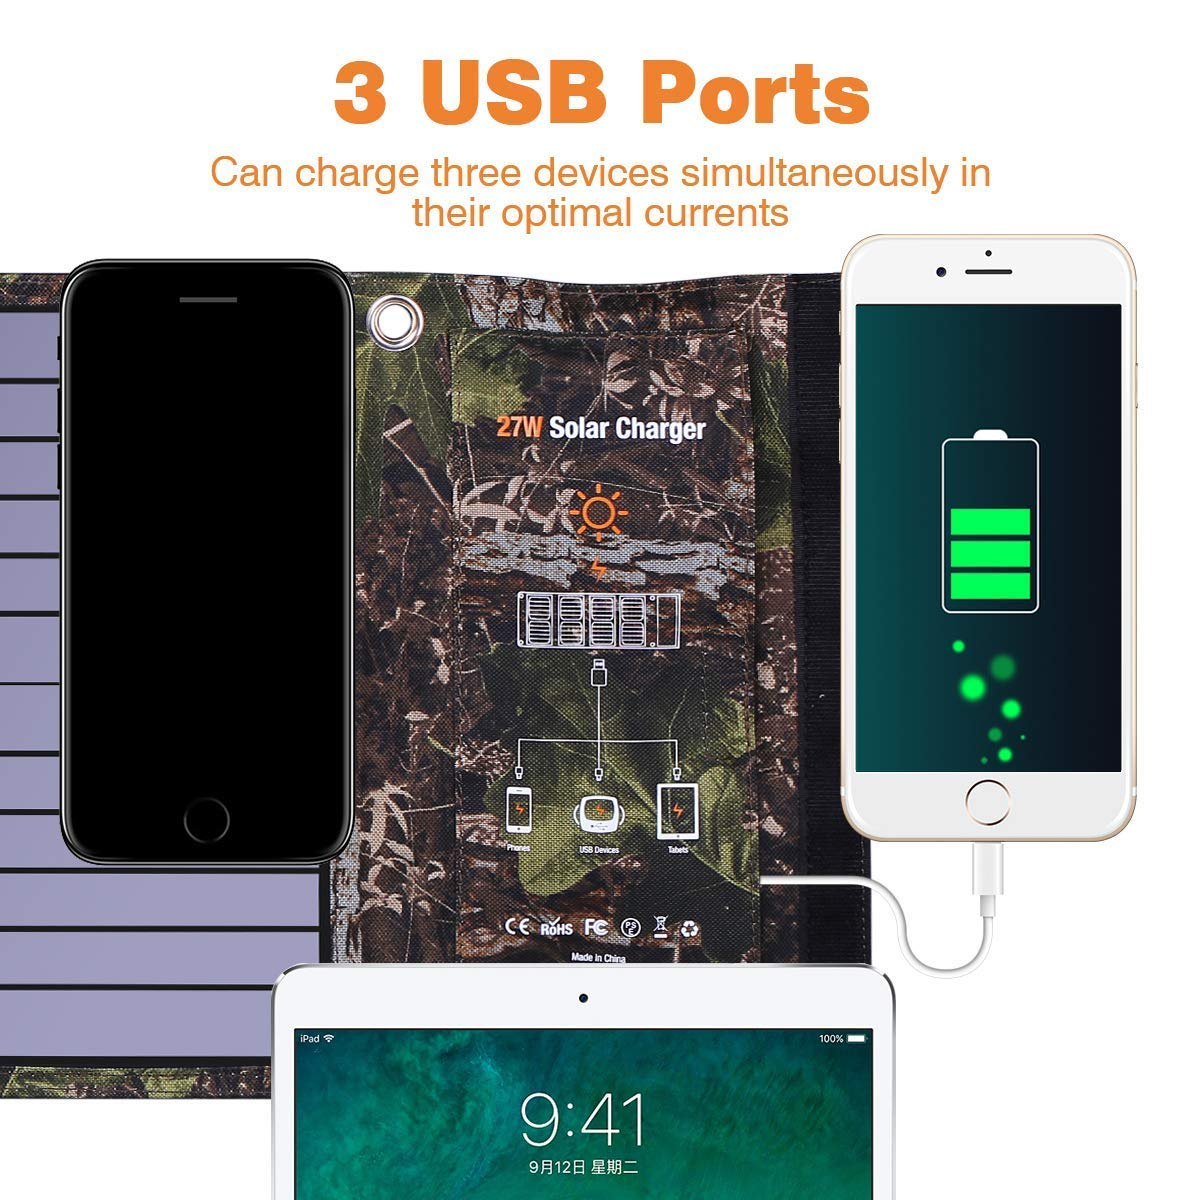 Dohiker Portable Foldable Solar Panel Charger, 27W Solar Phone Charger with 3 USB Ports,Durable & Waterproof Solar Charger for Cell Phone, PowerBank, and Electronic Devices, Great for Camping, Hiking by Dohiker (Image #3)